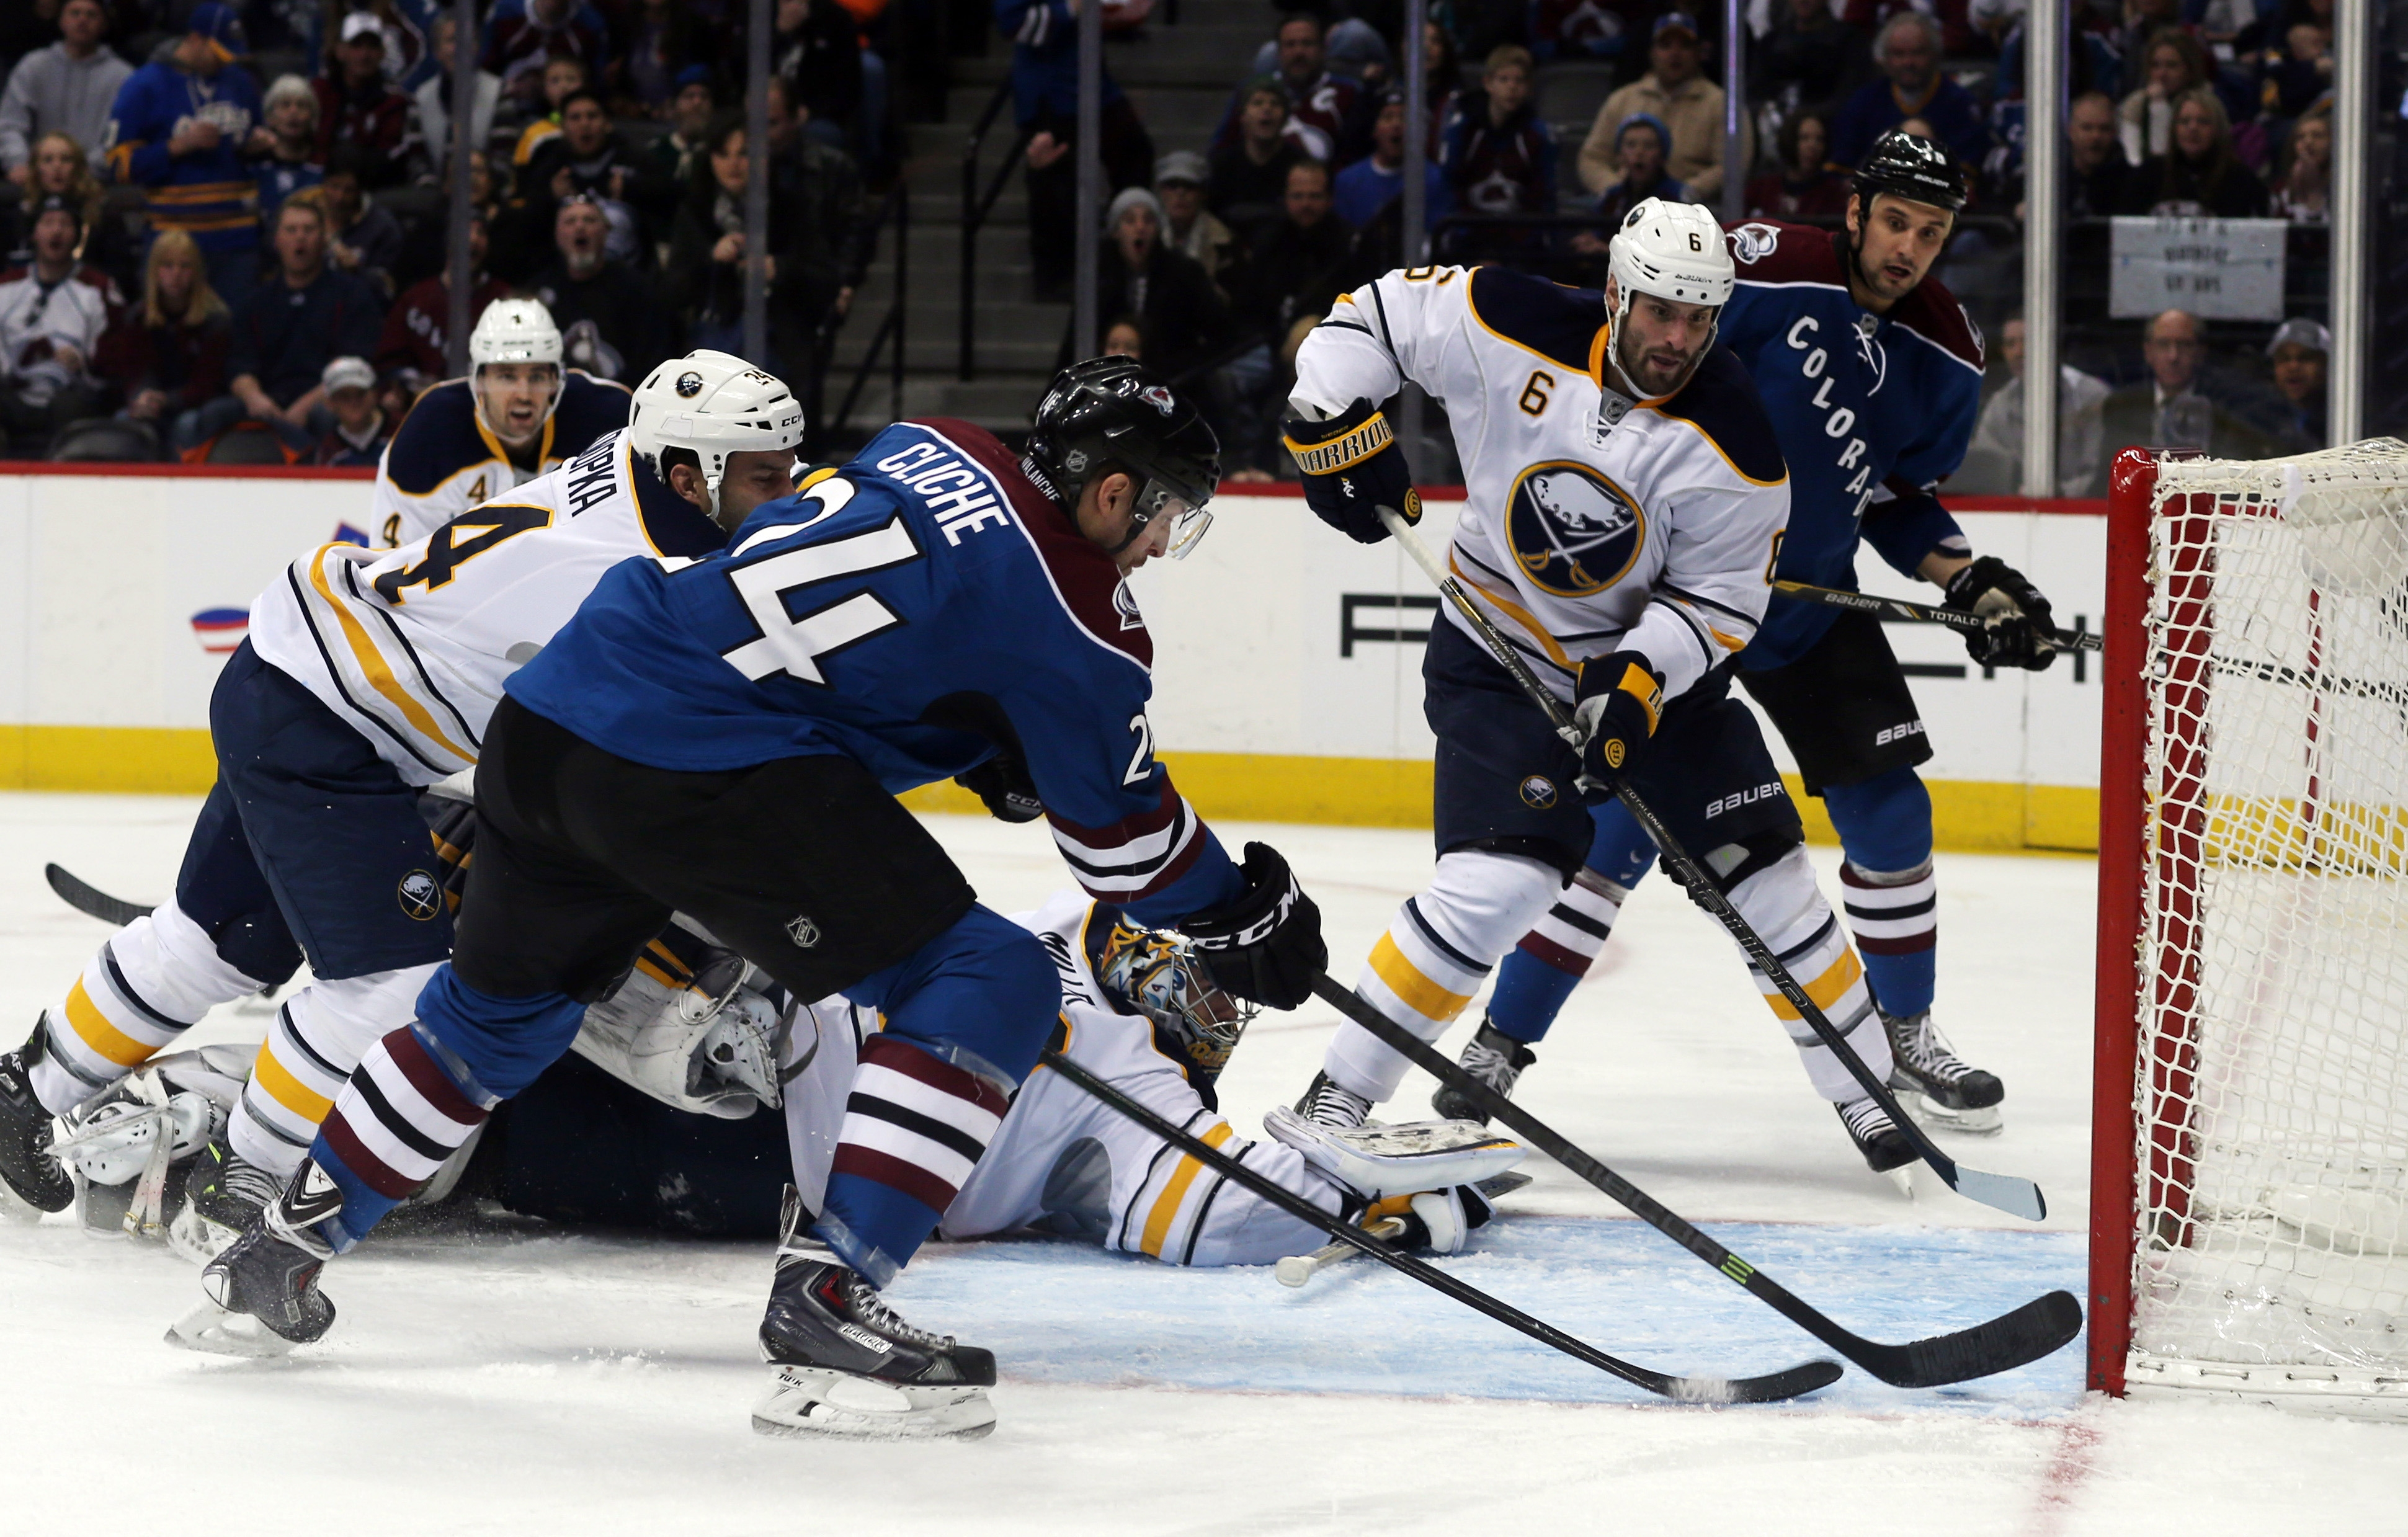 Colorado Avalanche center Marc-Andre Cliche (24) scores the first goal of his NHL career against the Sabres on Saturday in Denver.